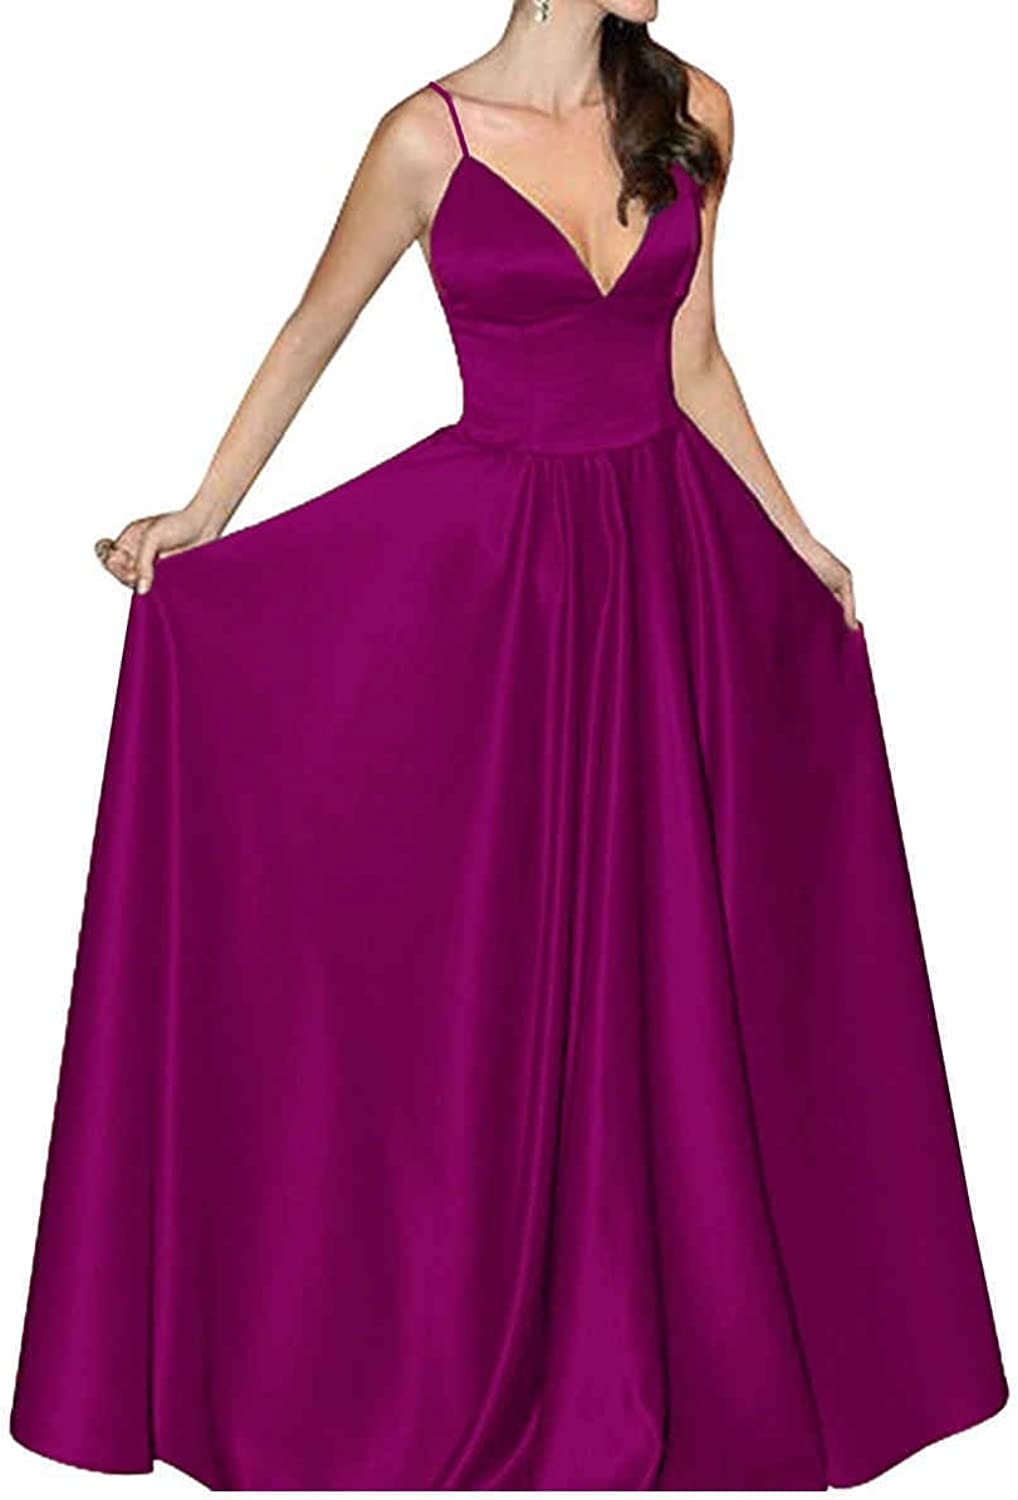 JQLD Womens V Neck Satin Evening Prom Dress Long Spaghetti Strap Homecoming Gown